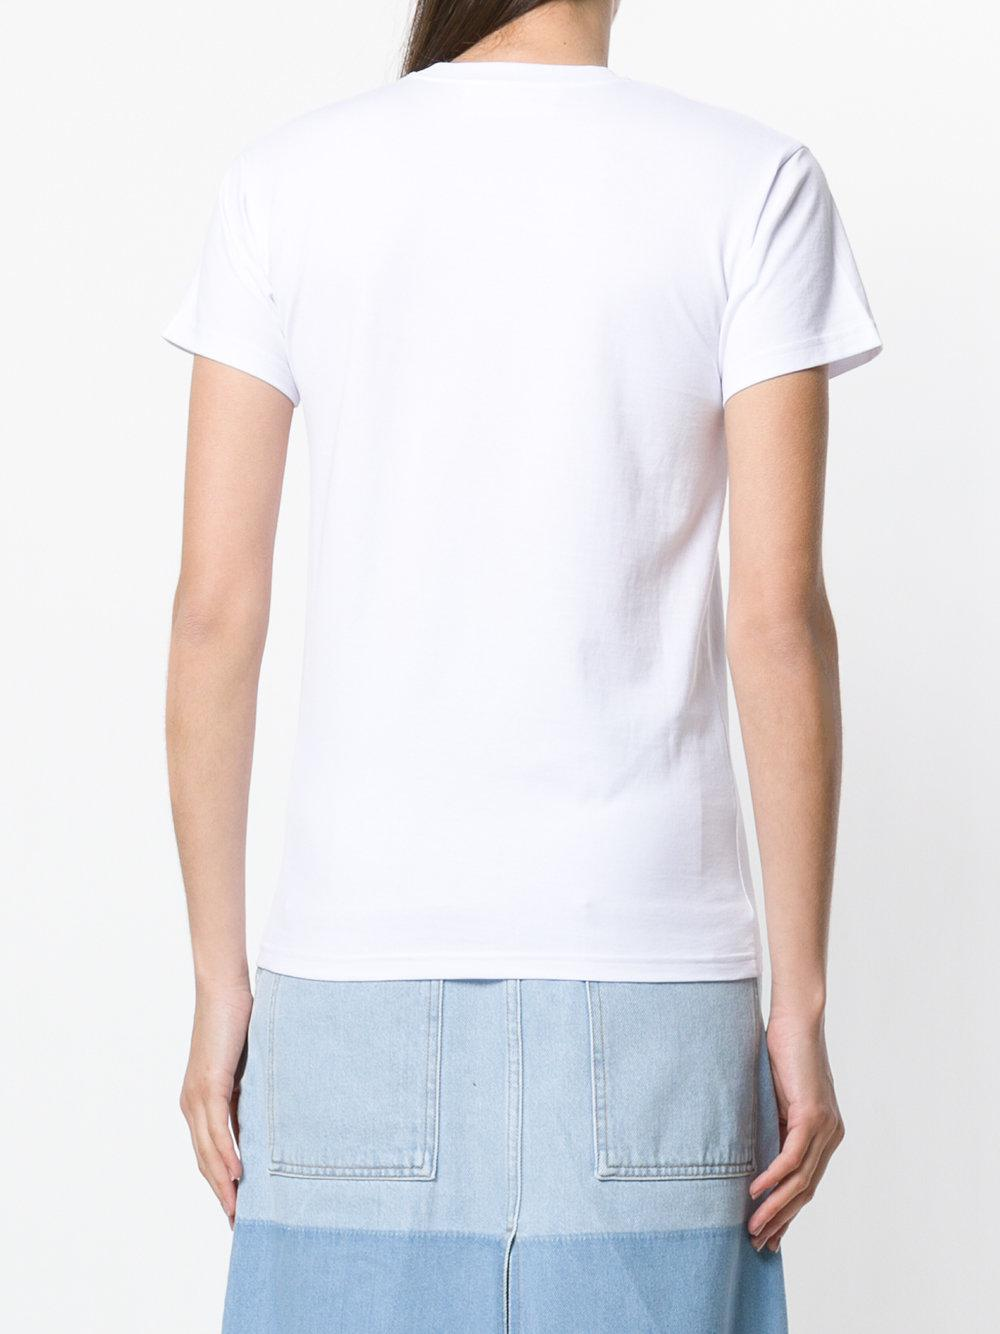 Buy Cheap Low Price Fee Shipping Cheap Discount Sale wire T-shirt - Grey Ports 1961 nK0Wbh6G